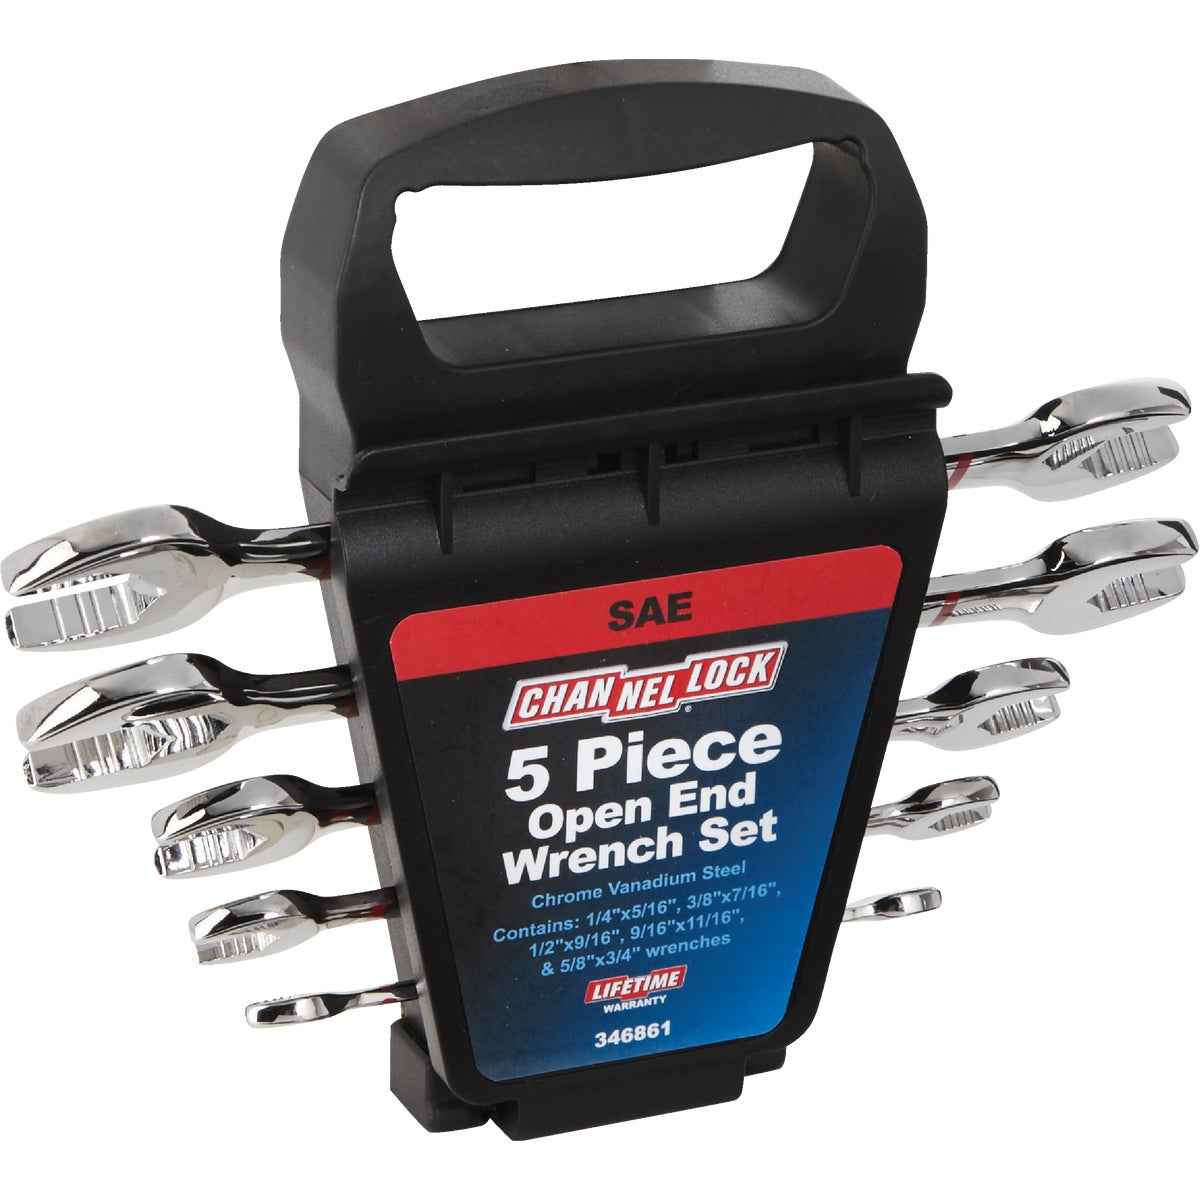 5PC OPEN END WRENCH SET - 346861 by Danaher Tool Ltd